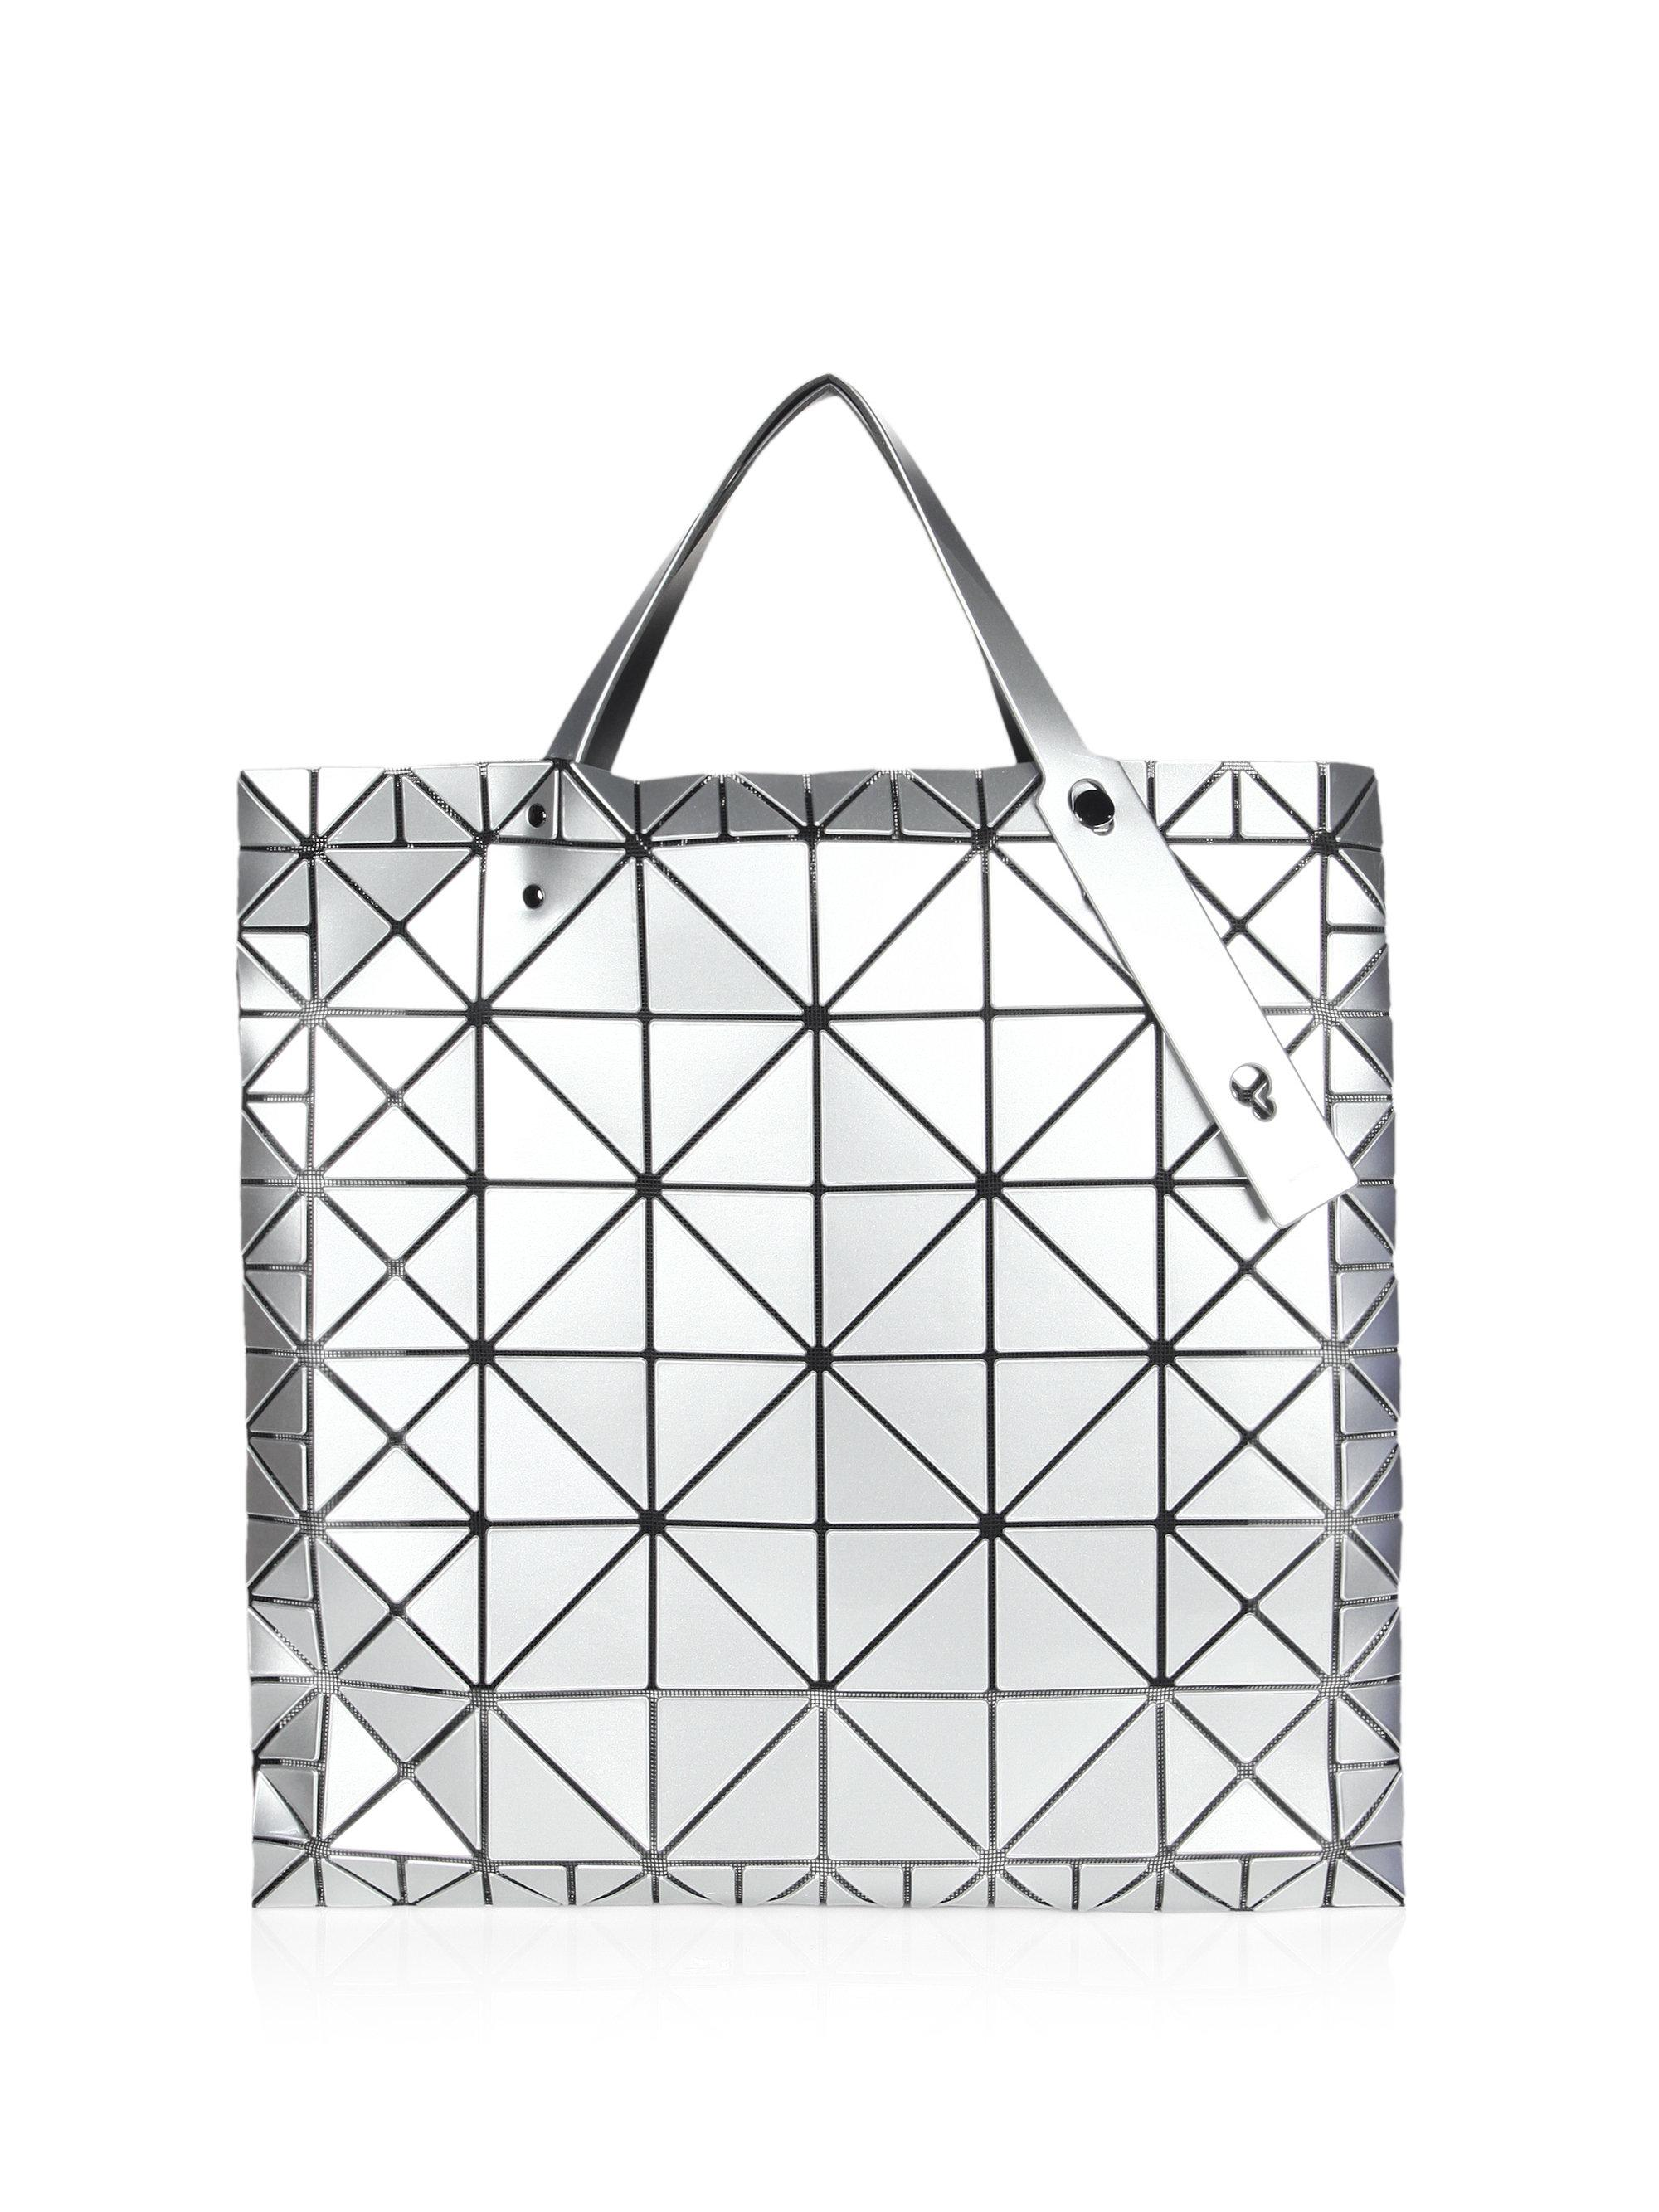 Bao Bao Issey Miyake Ratio shoulder bag For Sale Very Cheap Clearance Purchase RFRvD